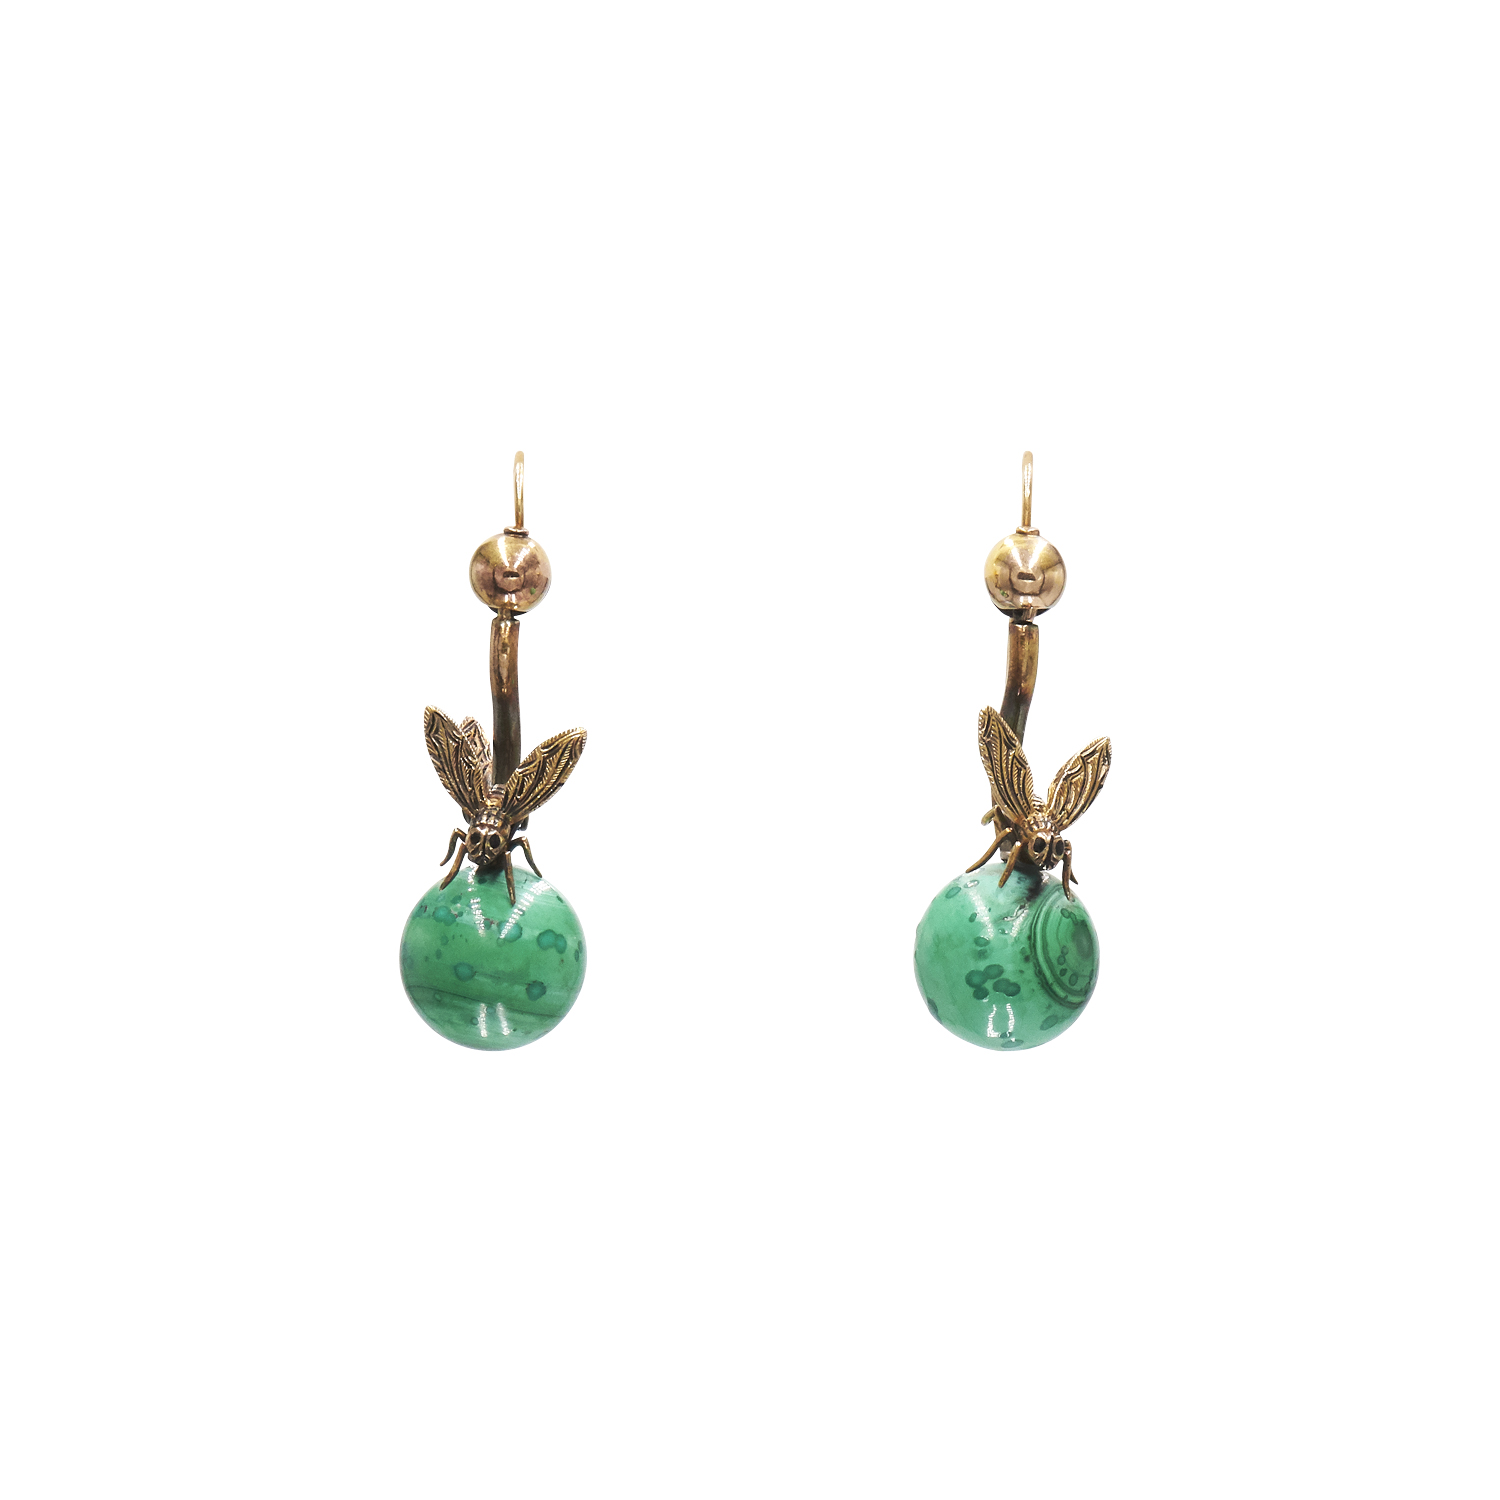 Antique 14K Yellow Gold Malachite Fly Earrings Style E-32956-FL-0-0